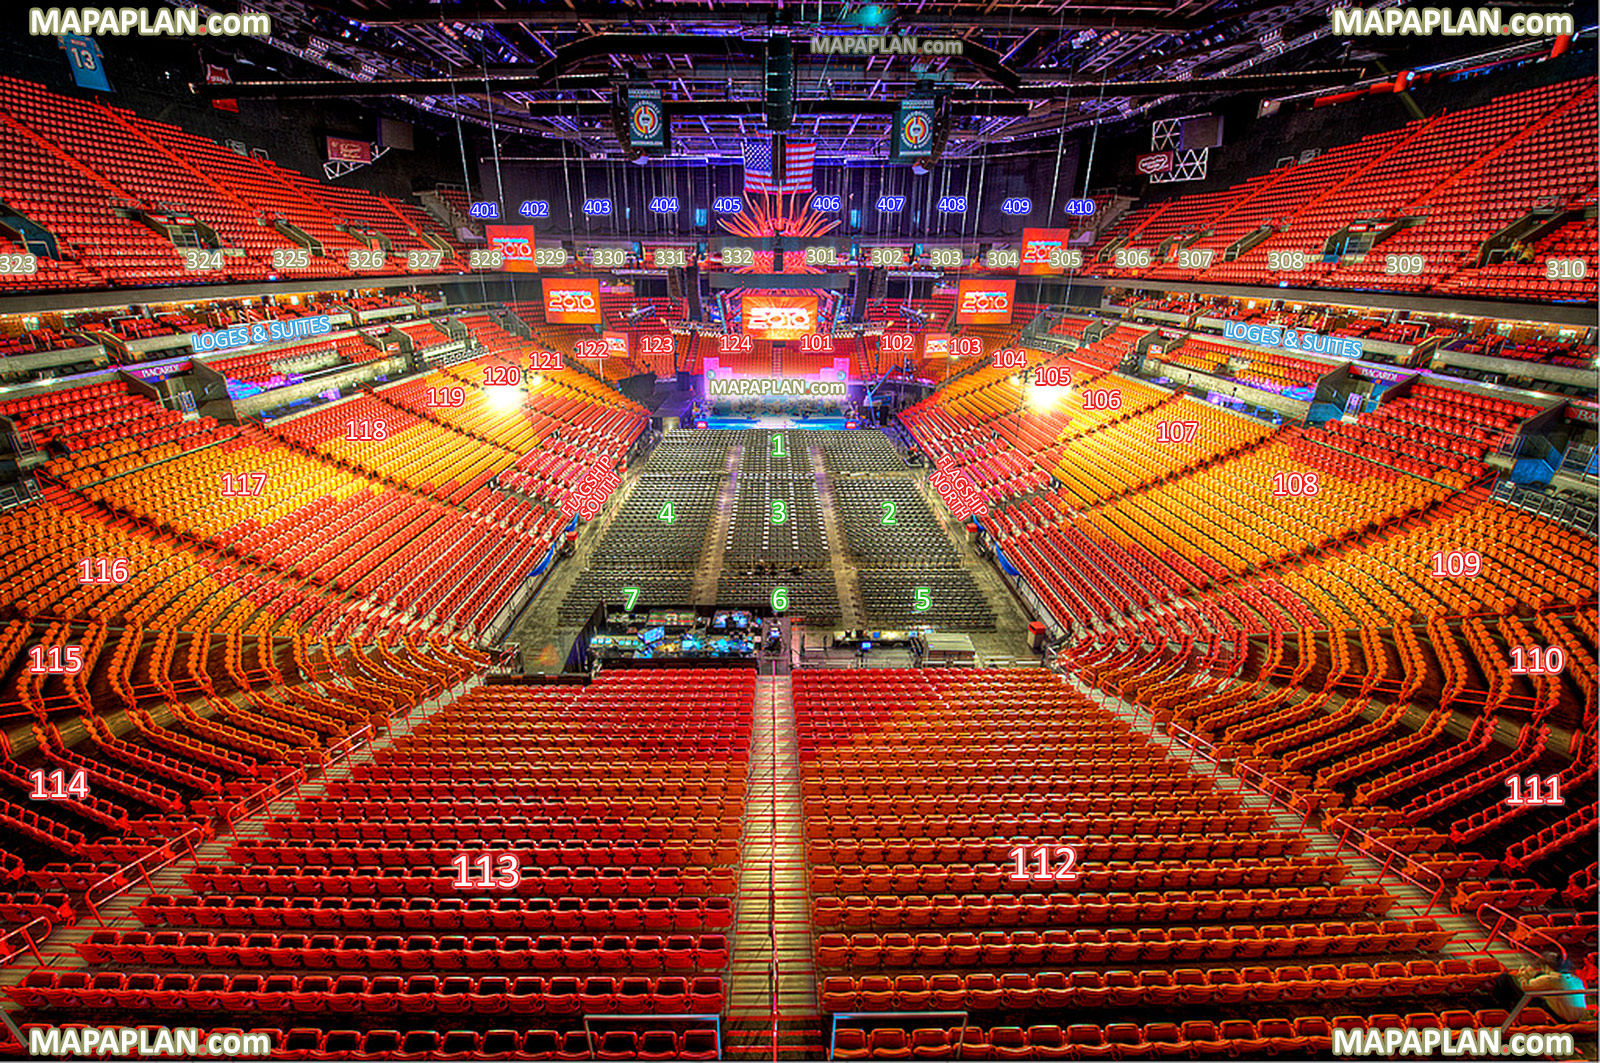 View Section 415 Row 1 Seat 19 Virtual Interactive Behind Stage Interior Aaa Tour Inside